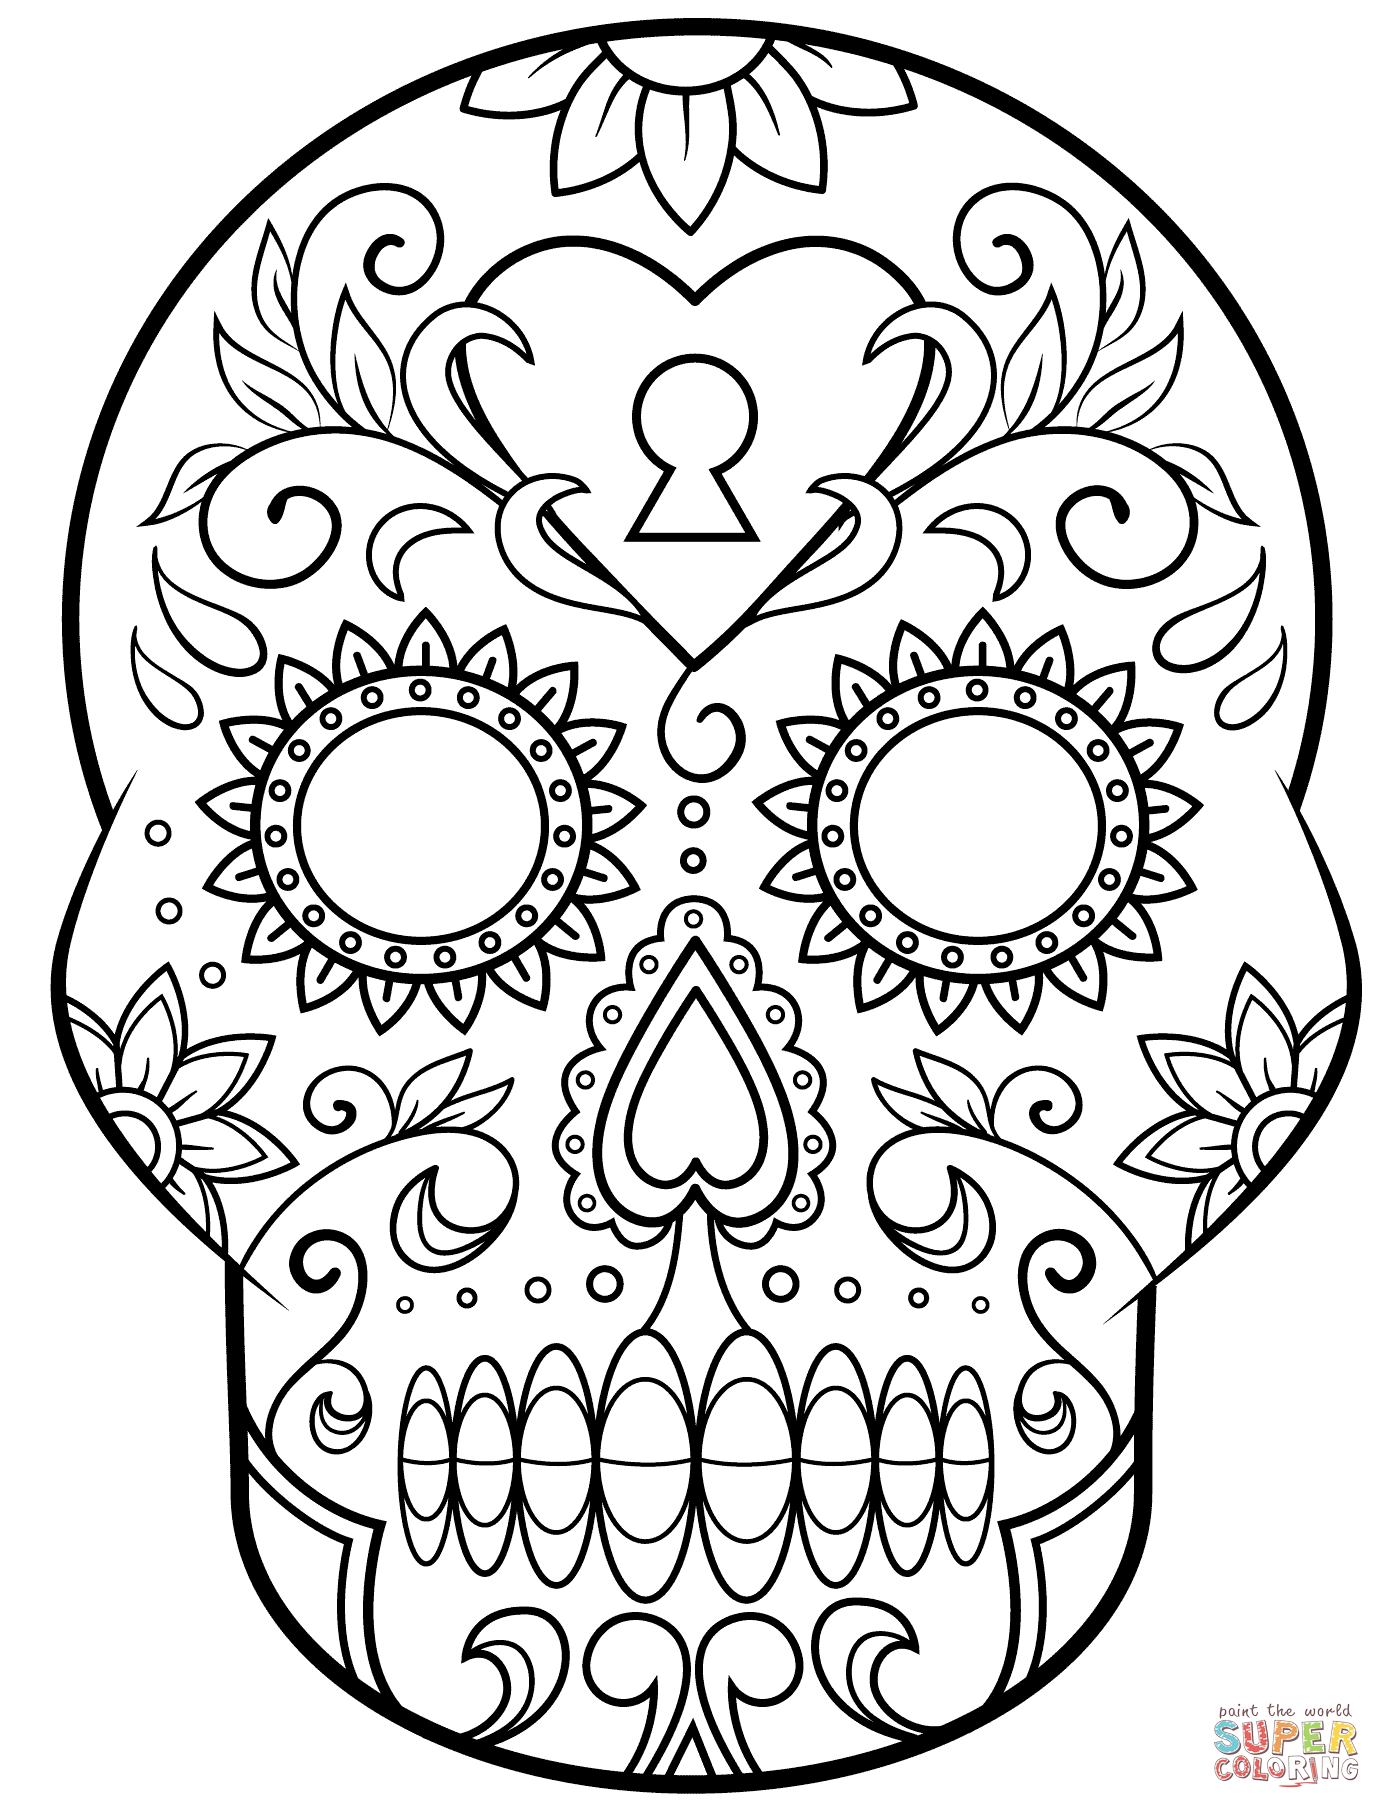 Day Of The Dead Sugar Skull Coloring Page Free Printable Coloring Pages Skull Coloring Pages Halloween Coloring Pages Halloween Coloring